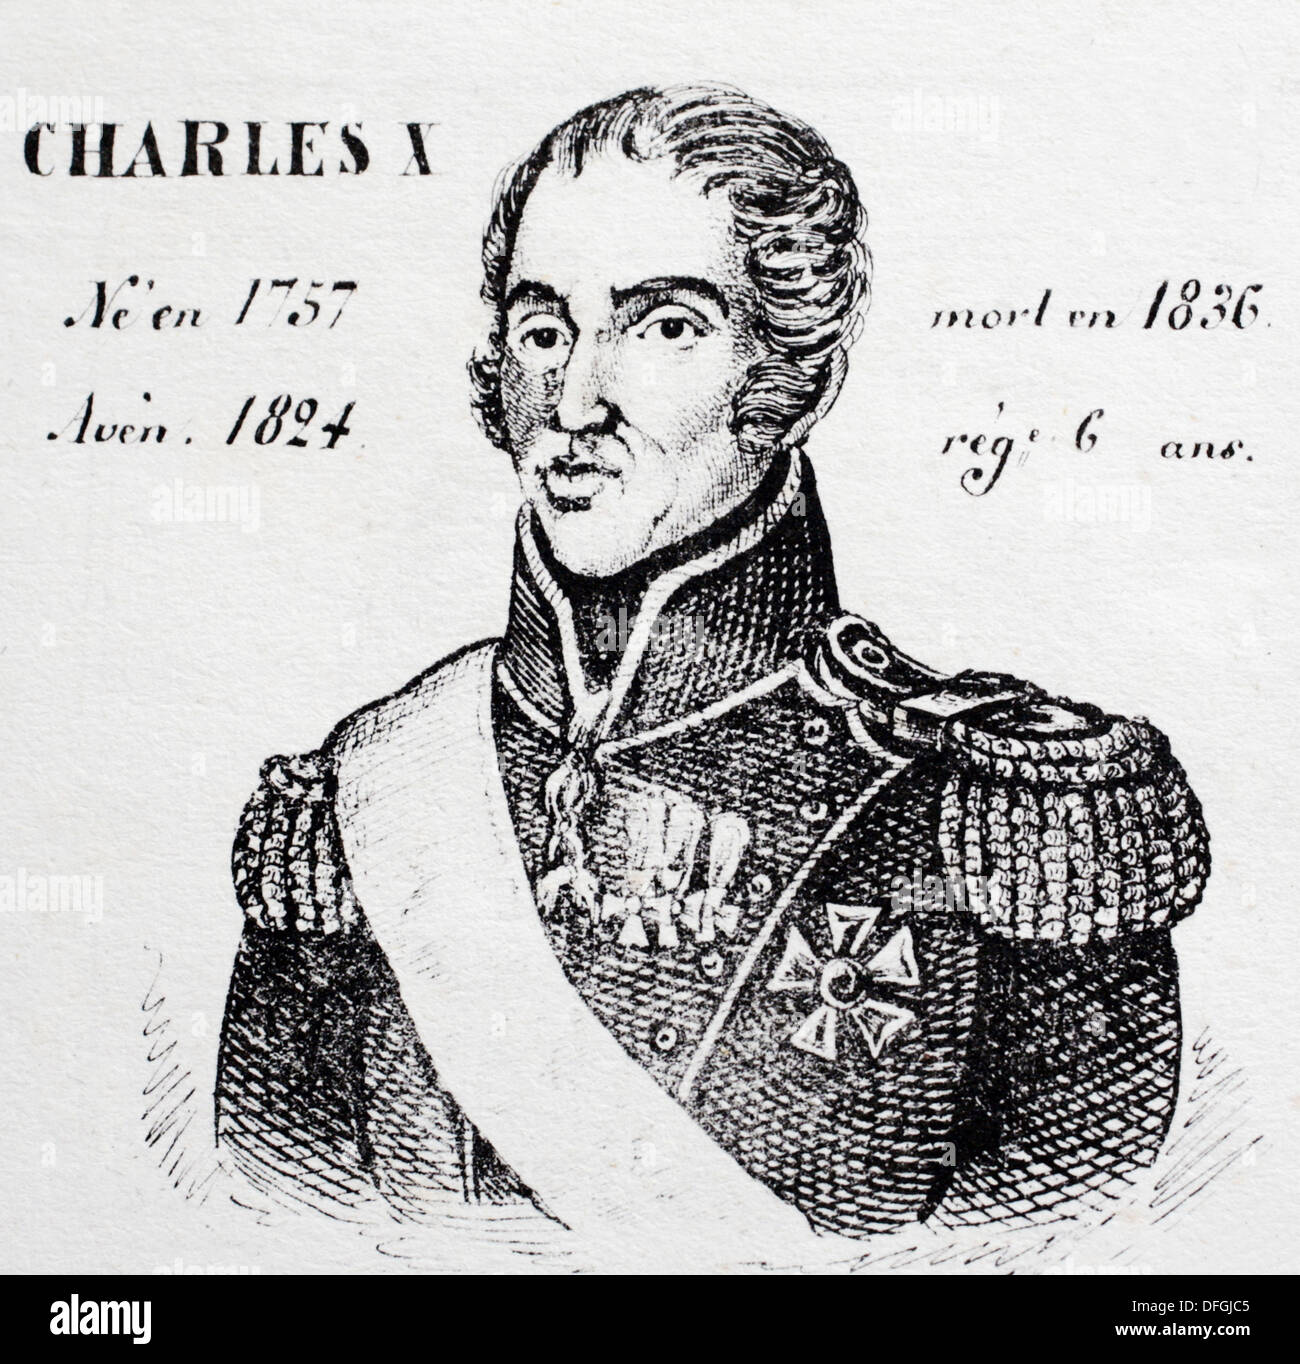 Charles X, king of France from 1824 to 1830. History of France, by  J.Henry (Paris, 1842) - Stock Image